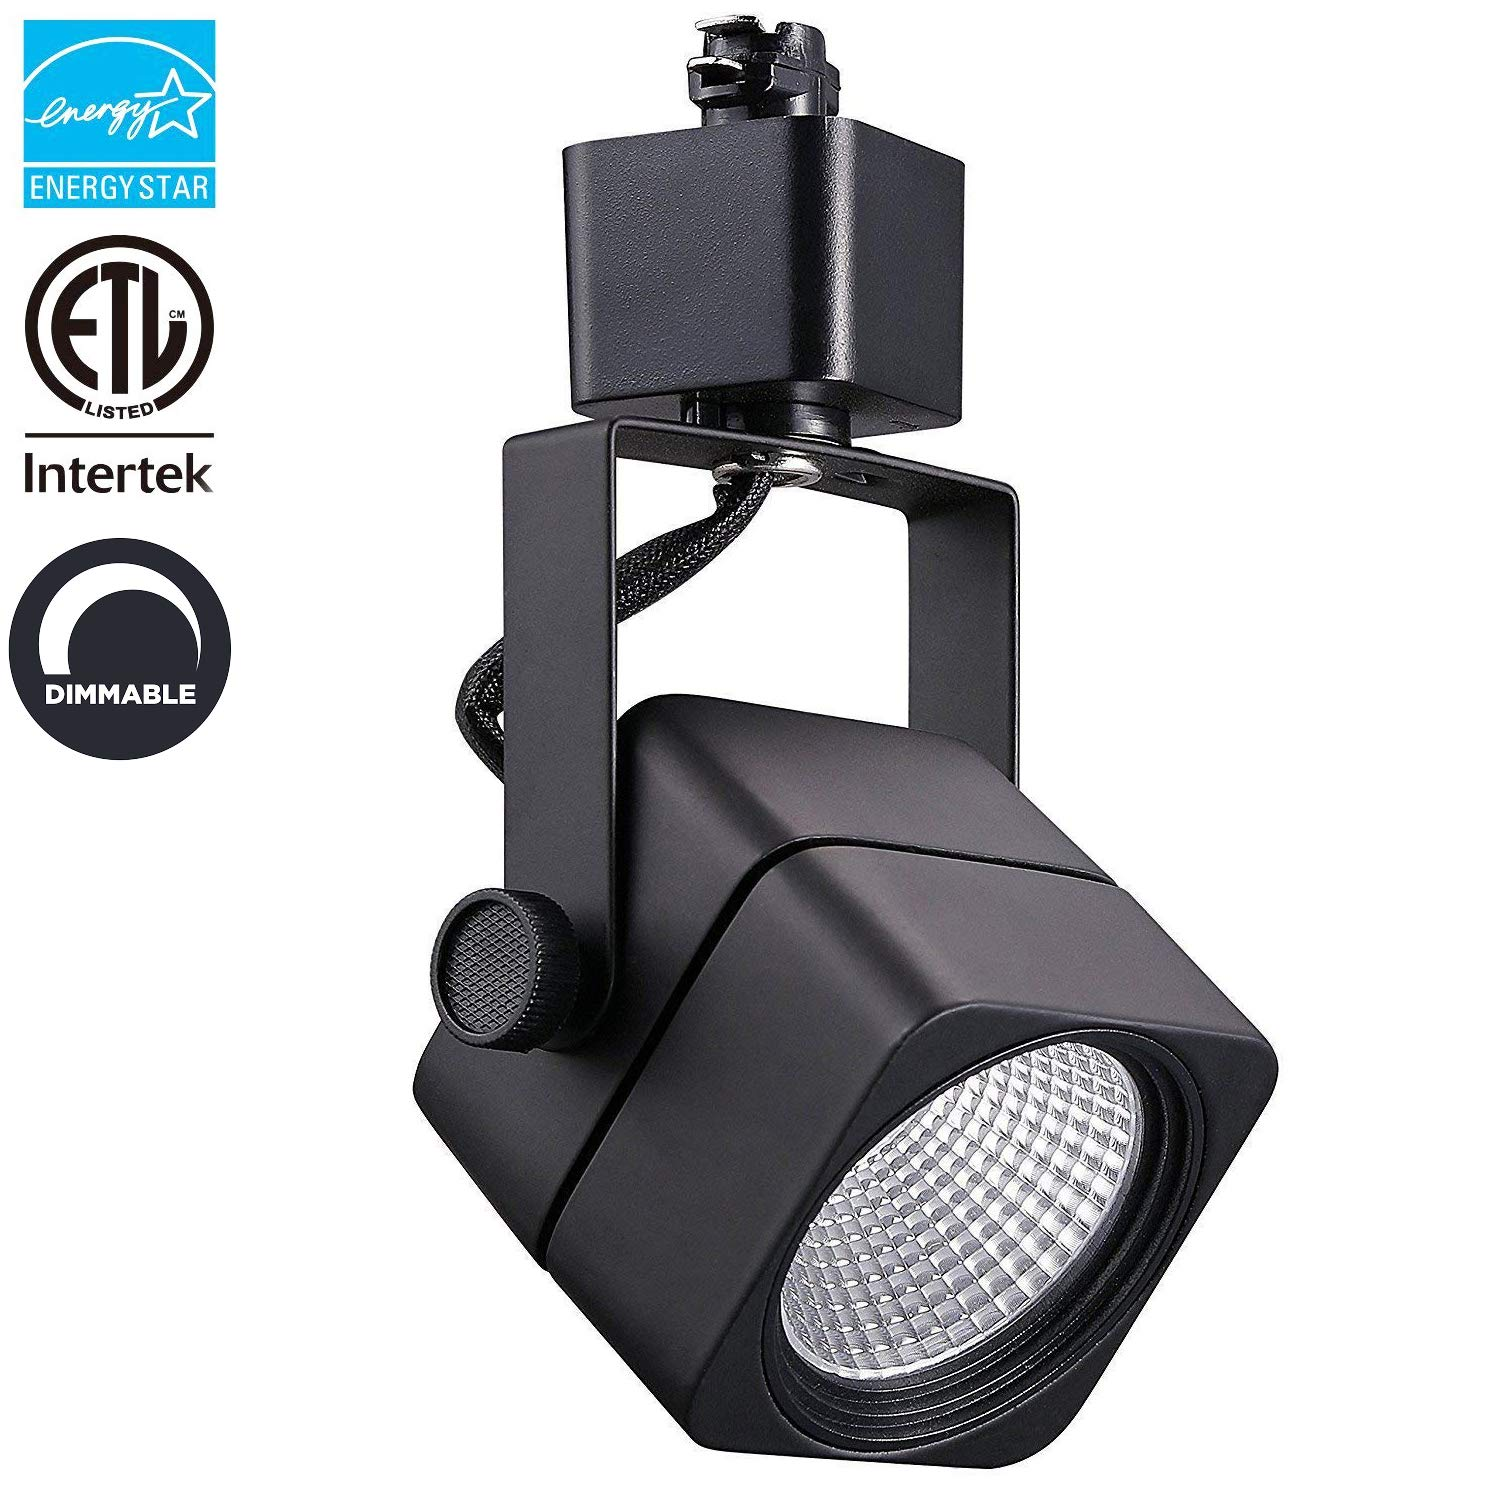 LED Track Lighting Head Black, CRI90+ 8W(=60W) 600LM Compatible with H Type Track   Energy Star ETL-Listed   for Home Decoration, 3000K Warm White Dimmable Square Light